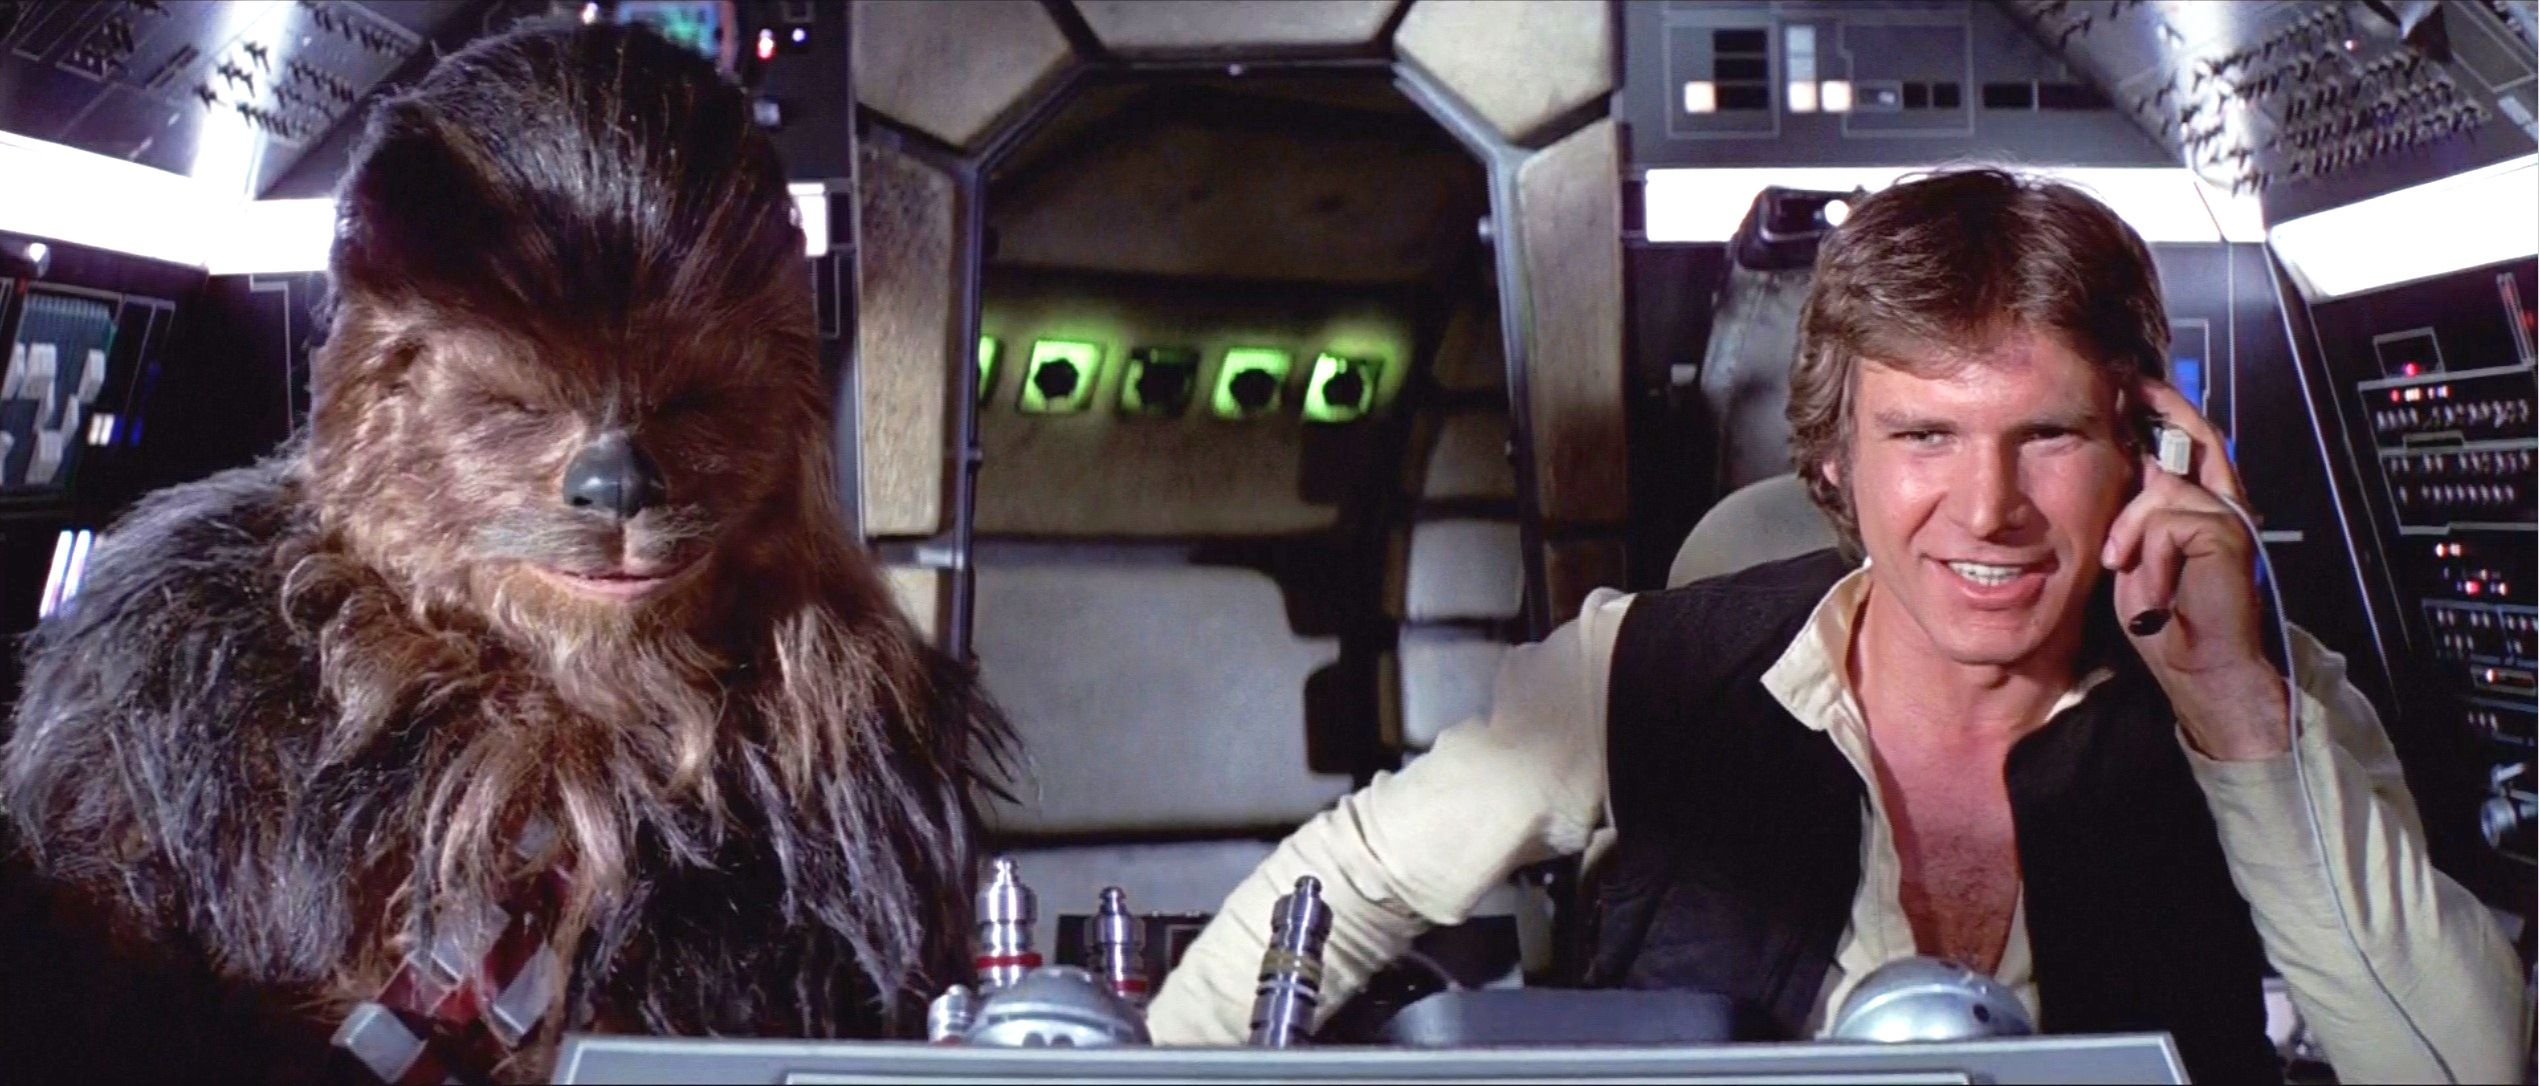 Pin By Brendan O Connell On Star Wars Star Wars Han Solo Star Wars Images Star Wars